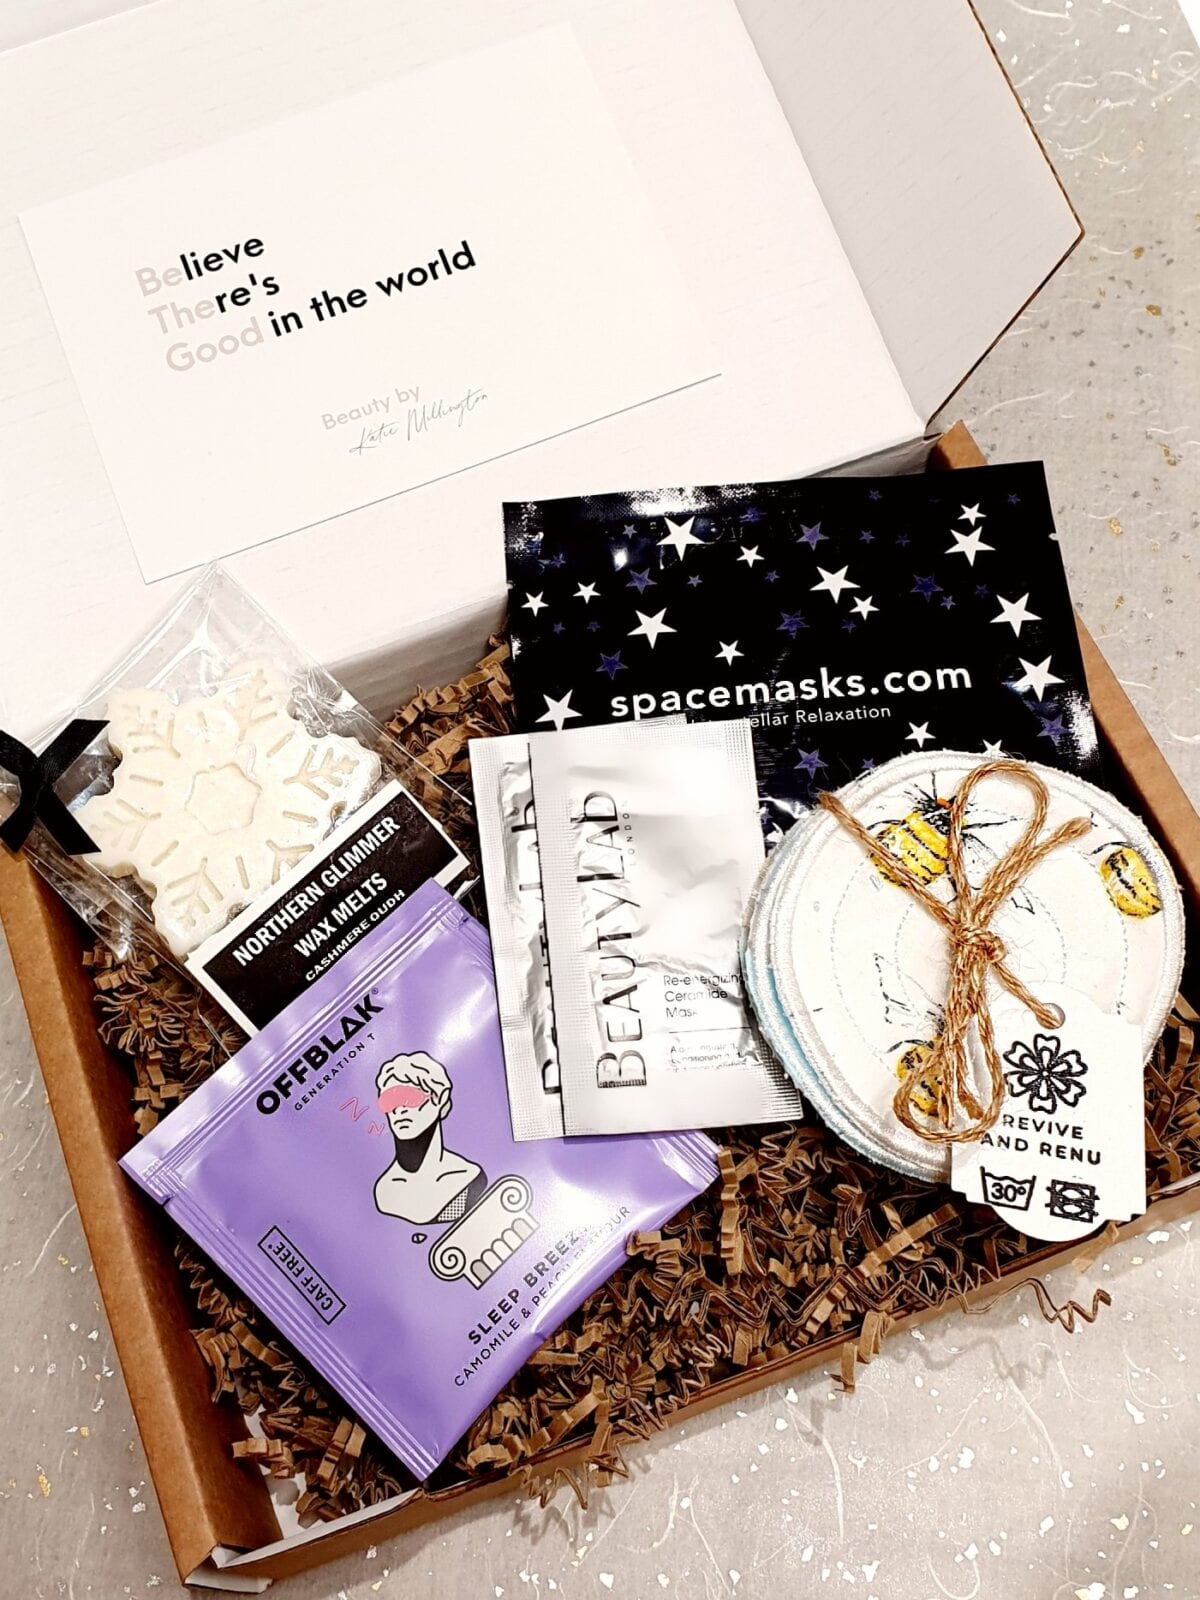 The pamper evening in a box delivered straight to your doorstep, The Manc